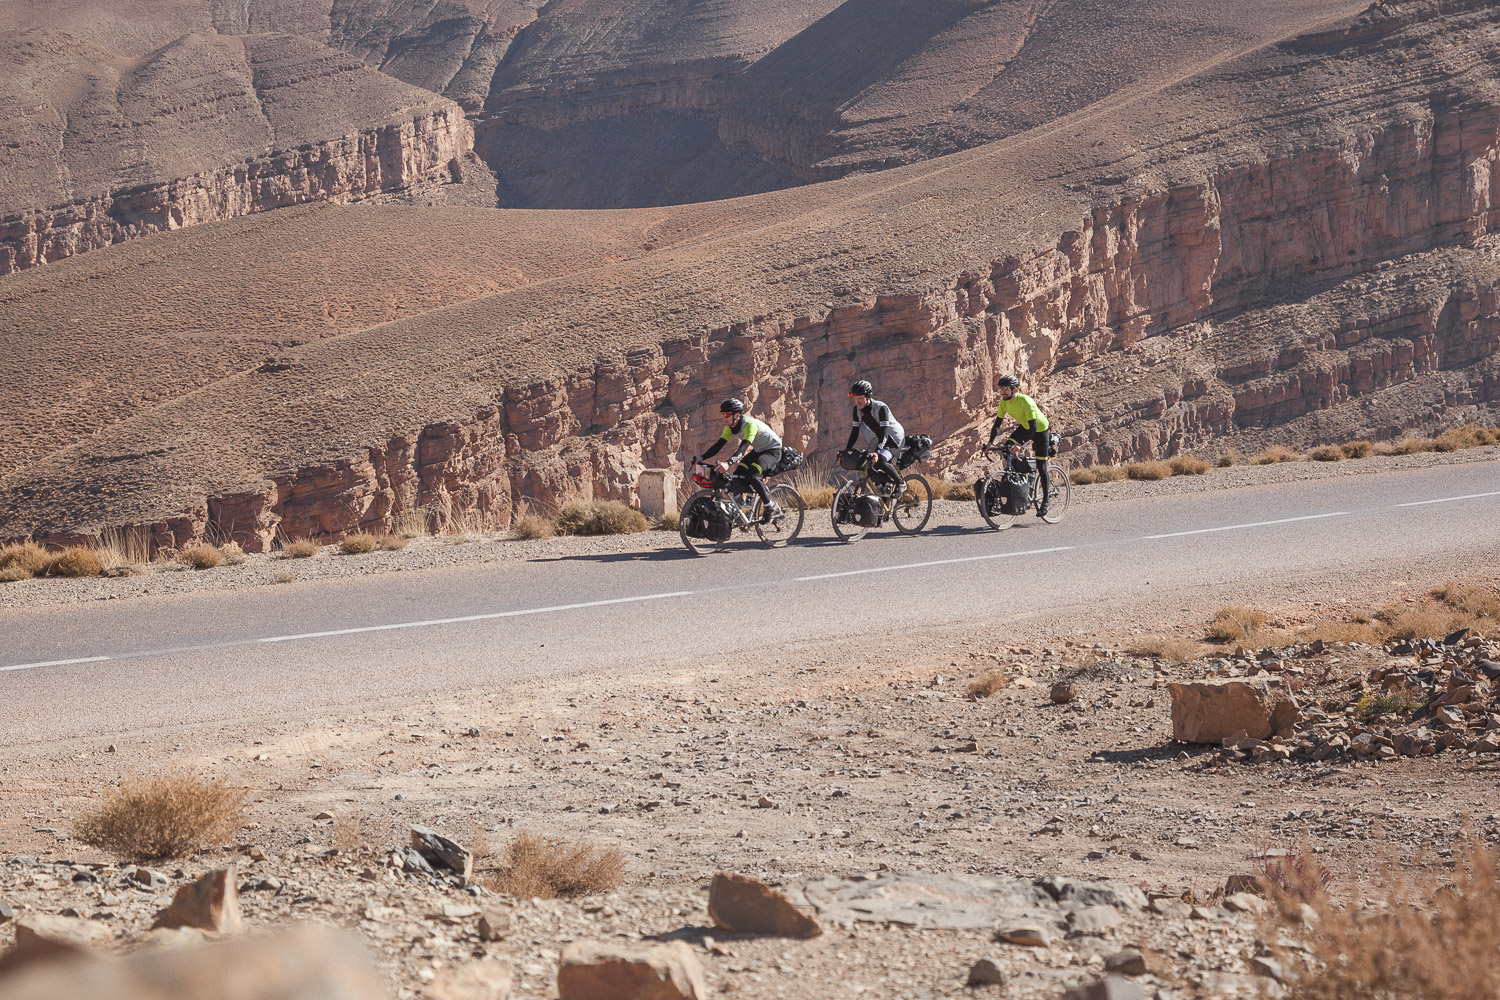 8bar bikes adventures morocco gravel 20151213 0127 bearbeitet 1 - 8bar Adventures - Morocco - High Atlas - Part 2/2